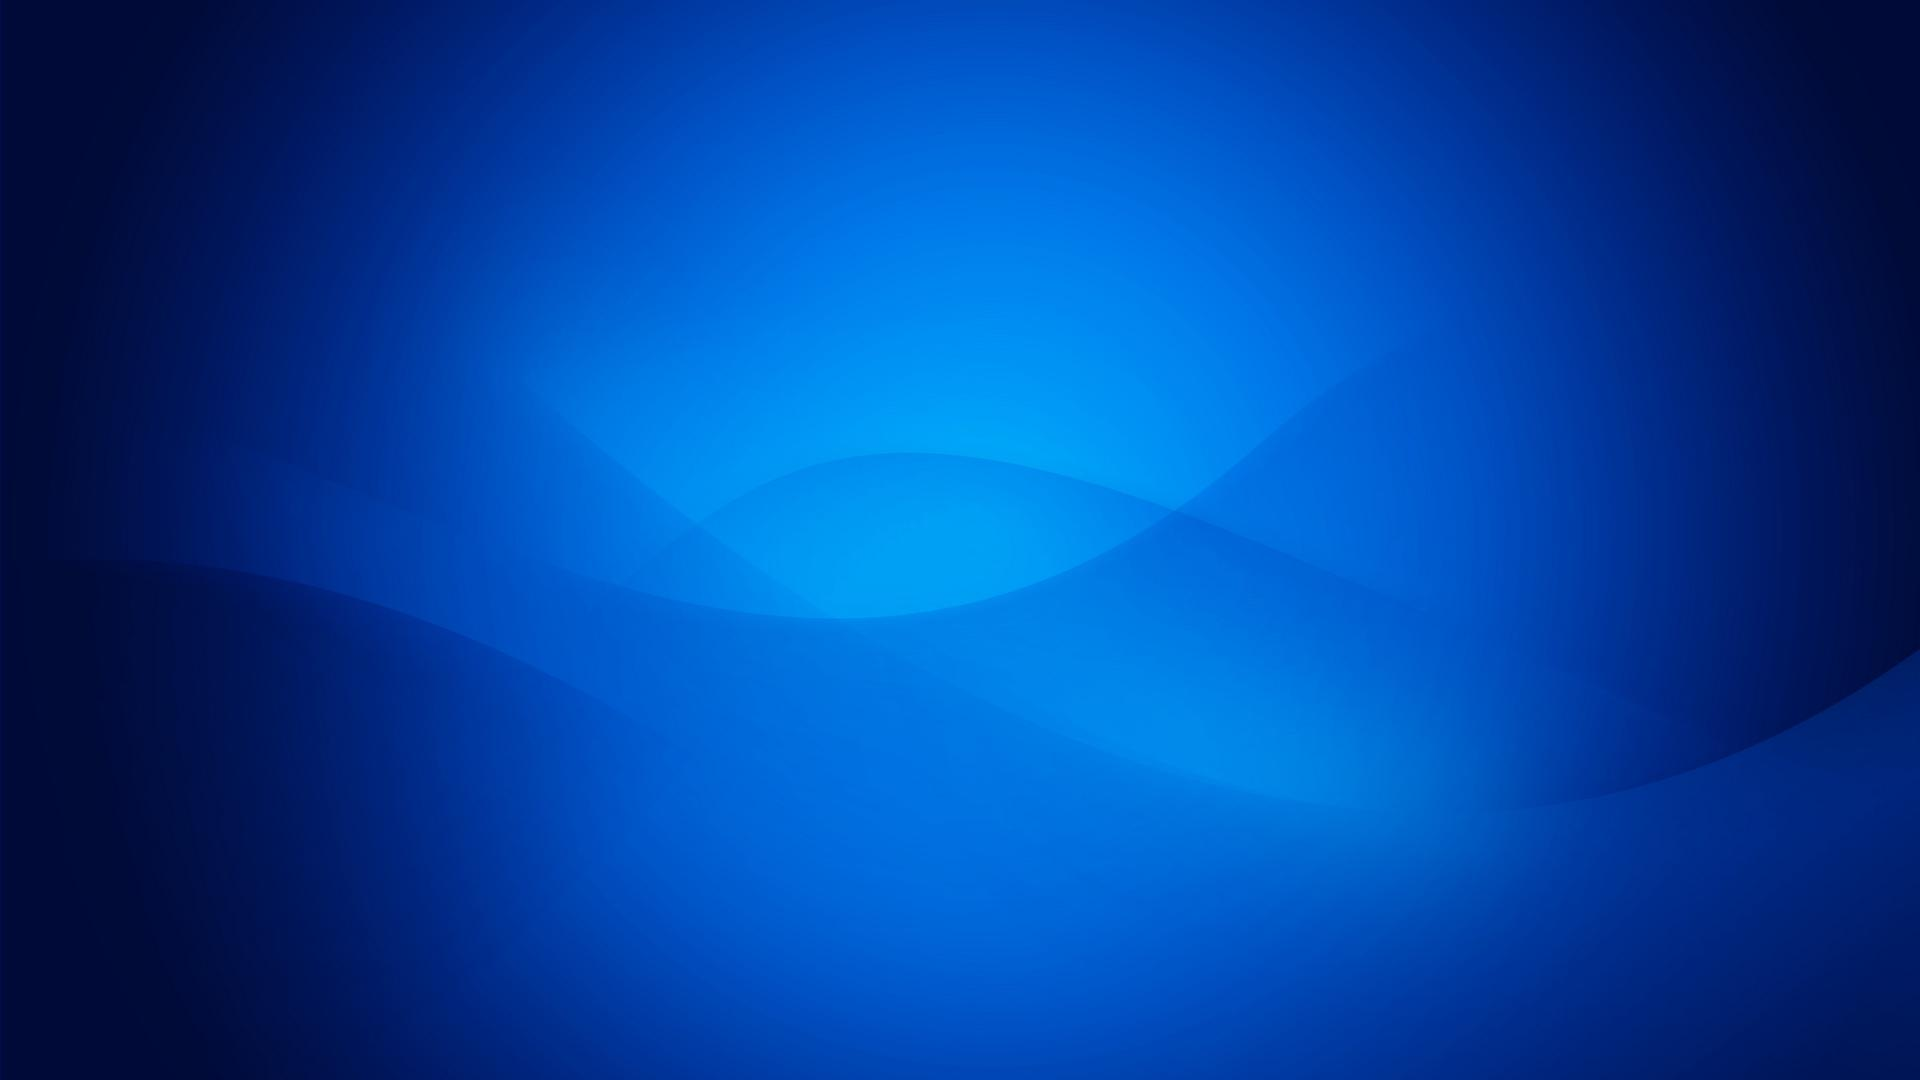 30 hd blue wallpapersbackgrounds for free download